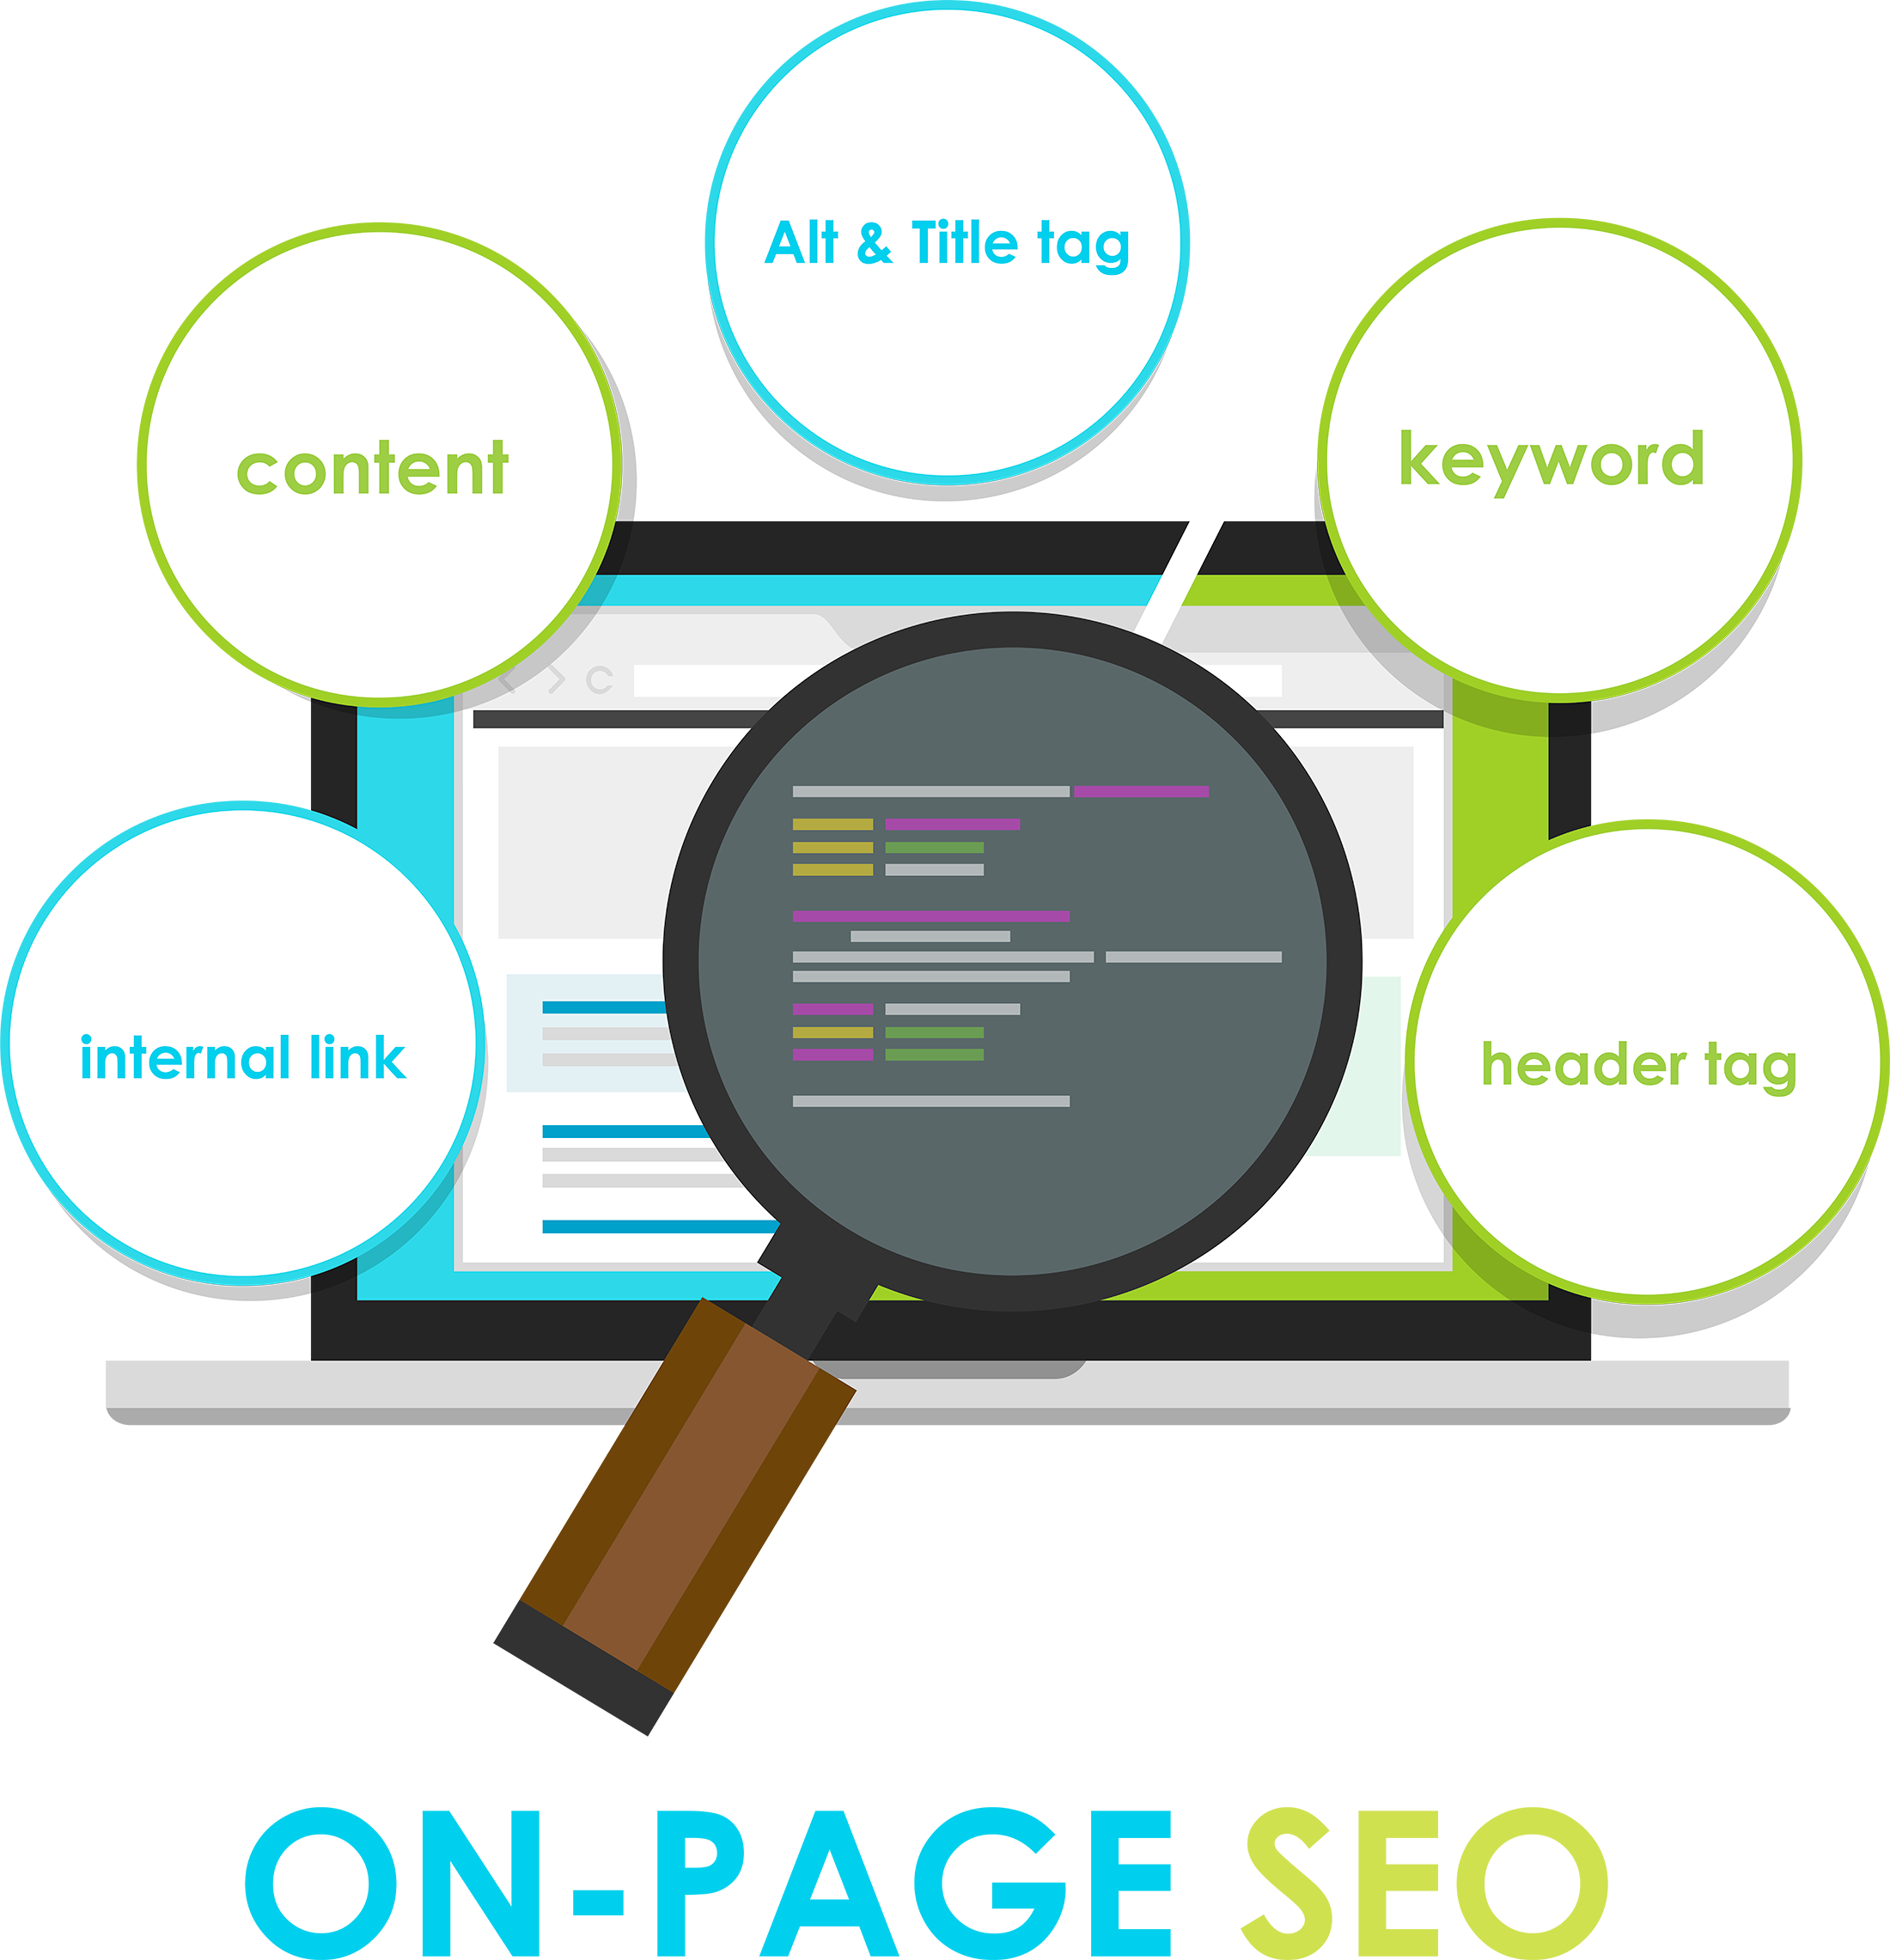 On-page SEO: internal link, content, alt & title tag, keyword, header tag. Grafikk